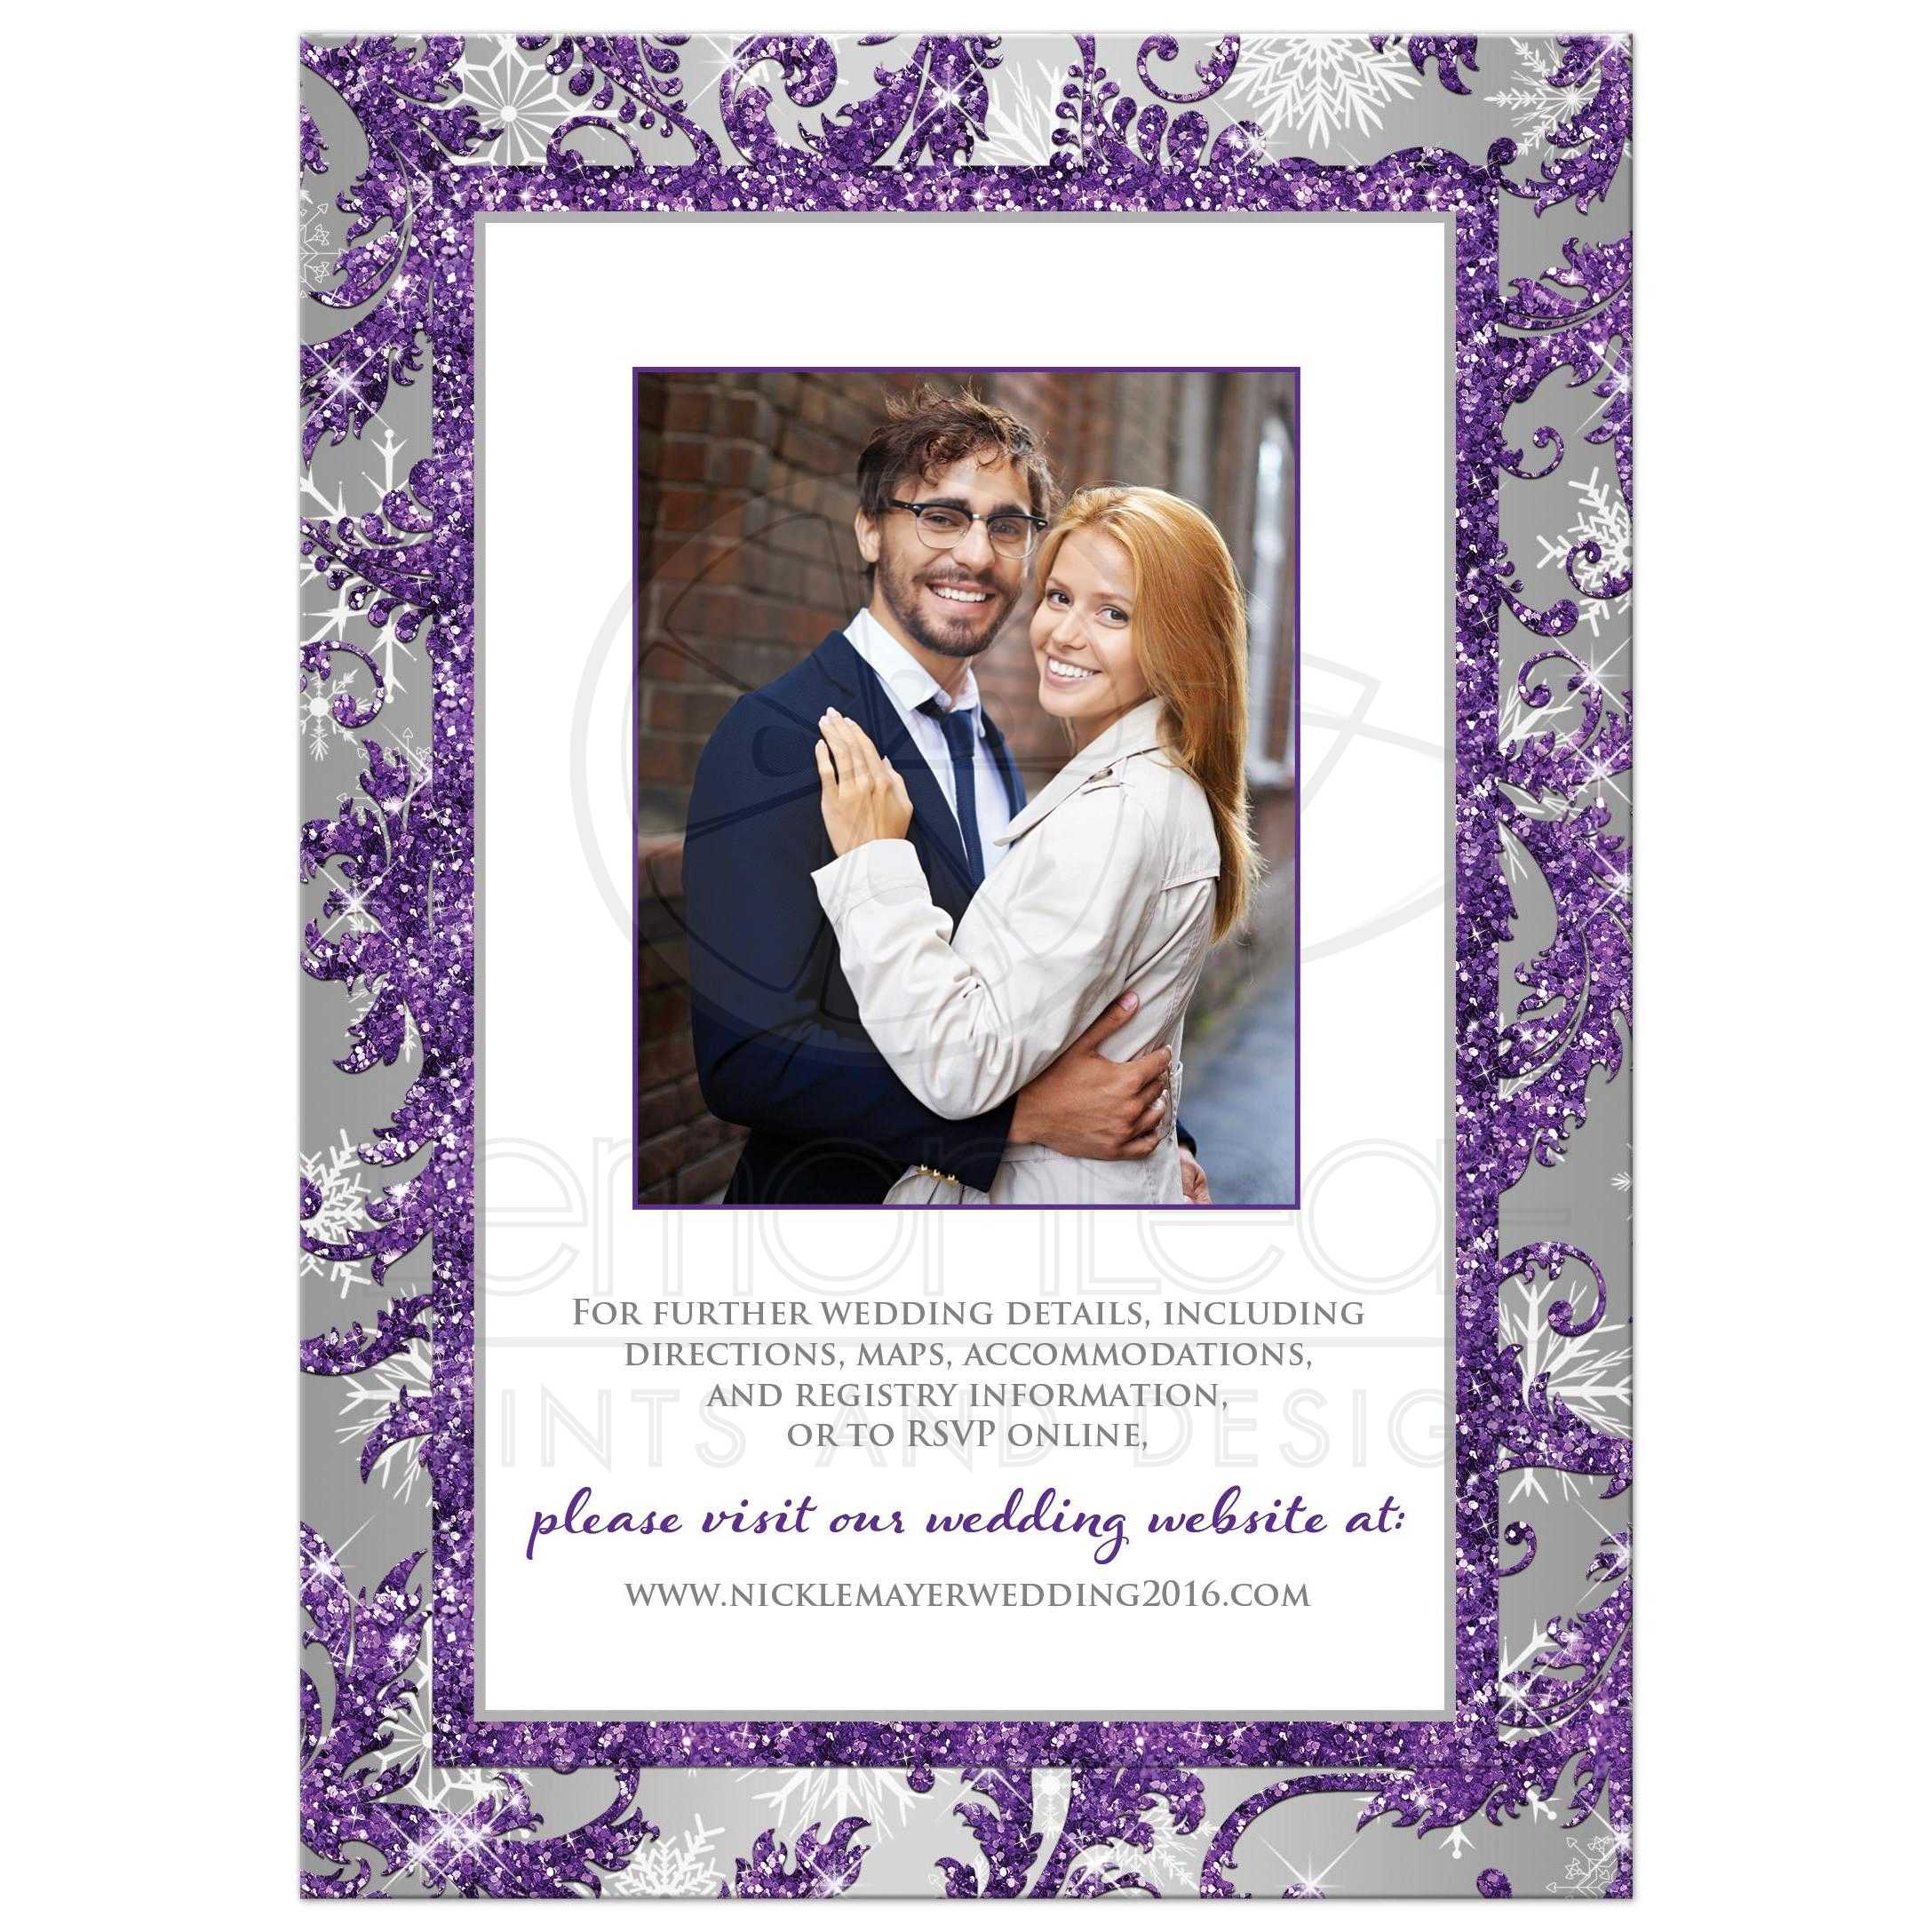 Best Winter Wonderland Wedding Invite In Ice Purple Silver And White Snowflakes With Joined